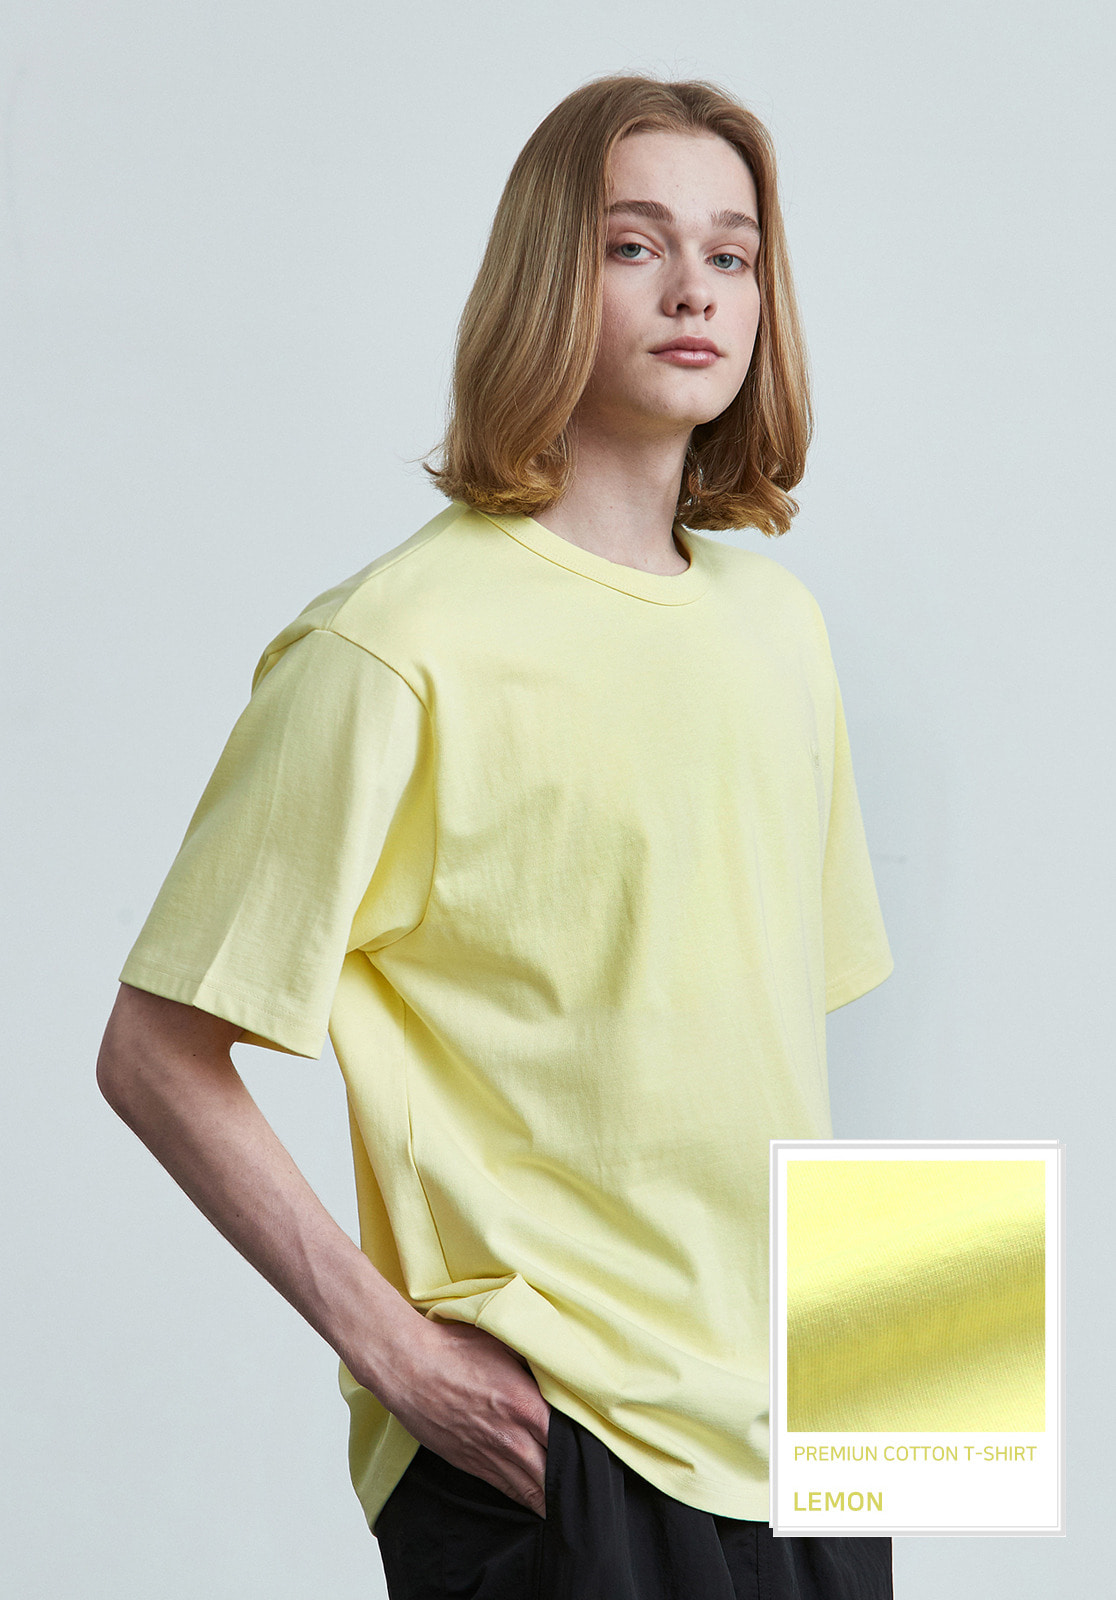 V017 PRIMIUM COTTON T-SHIRTS  LEMON